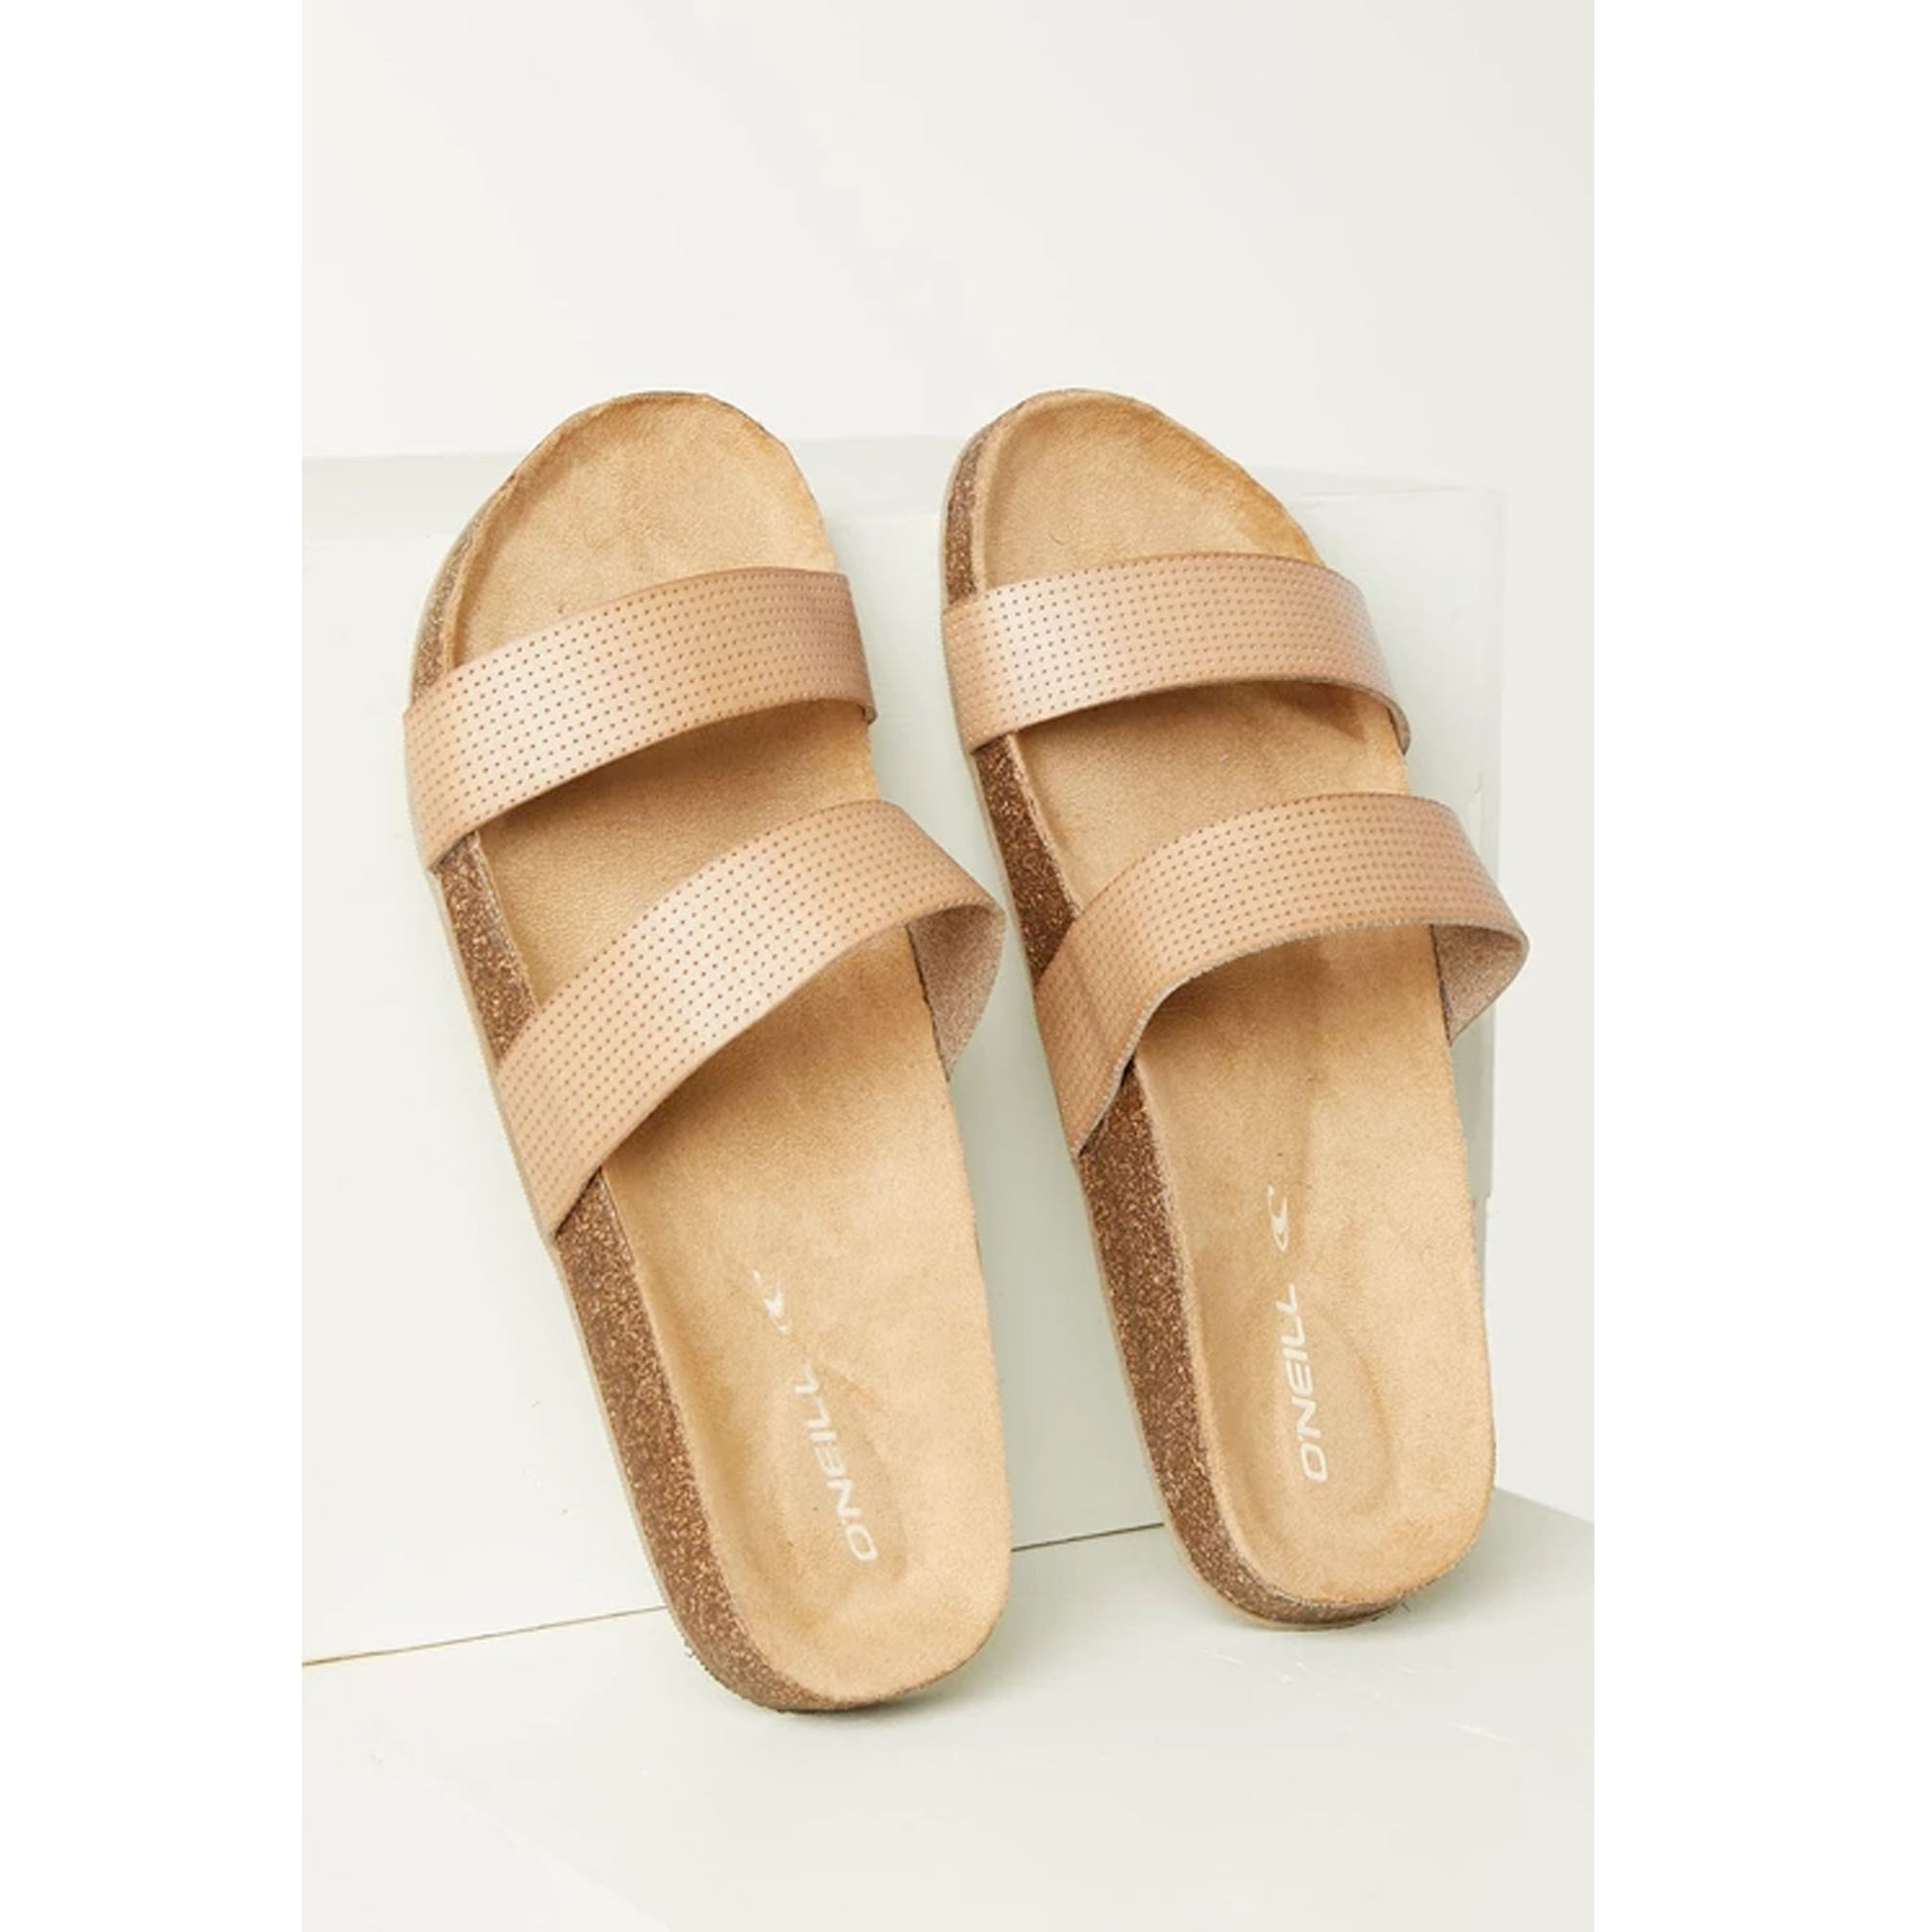 O'Neill Oxnard Women's Sandals